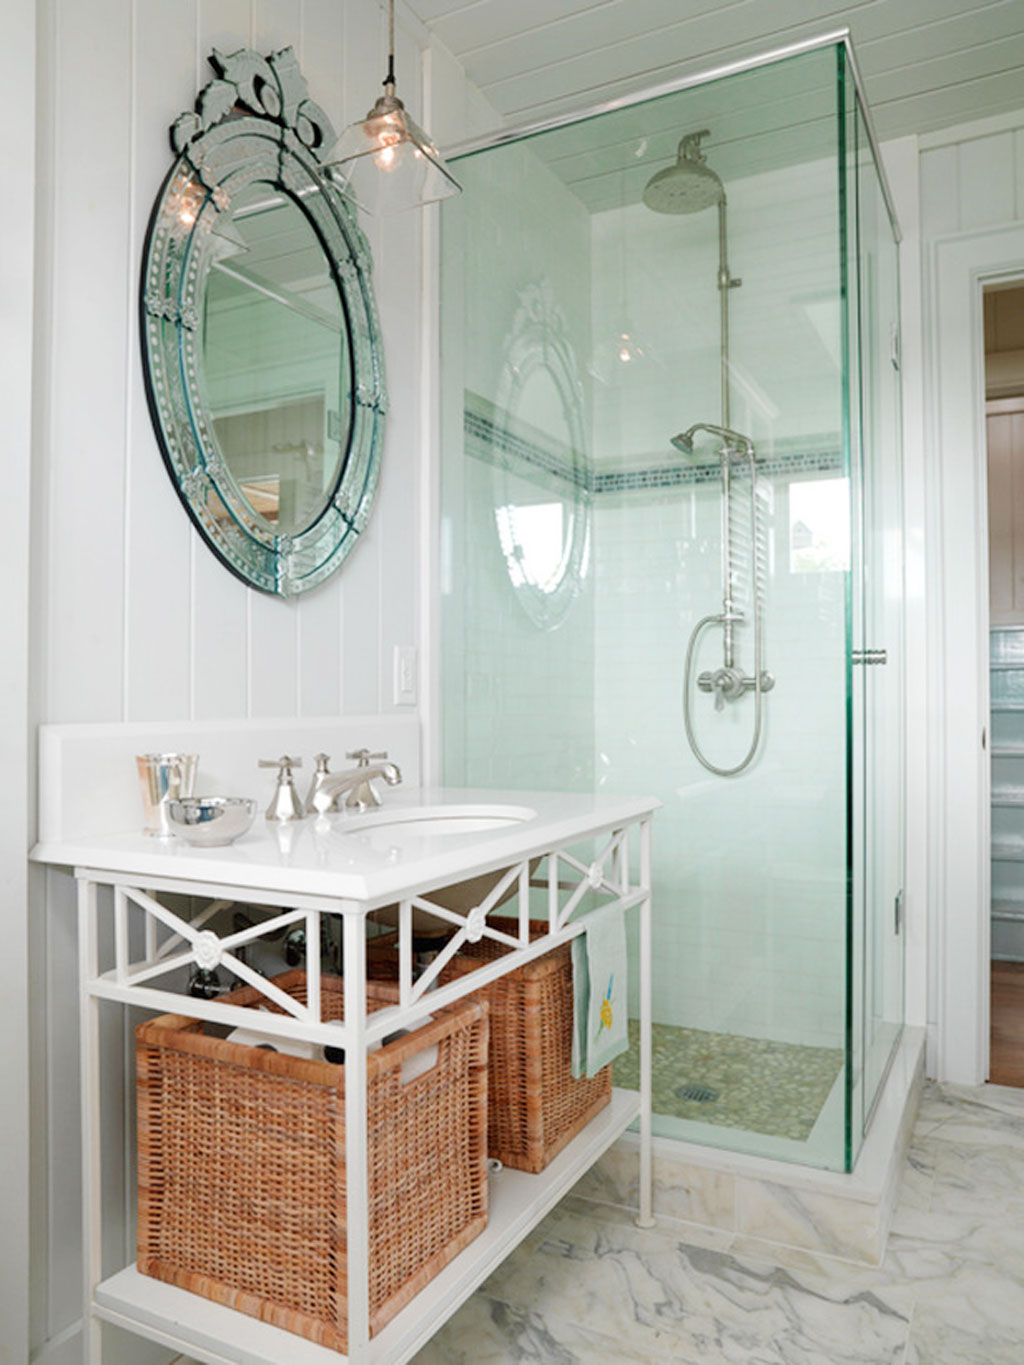 Efficient bathroom storage ideas for small spaces | EwdInteriors